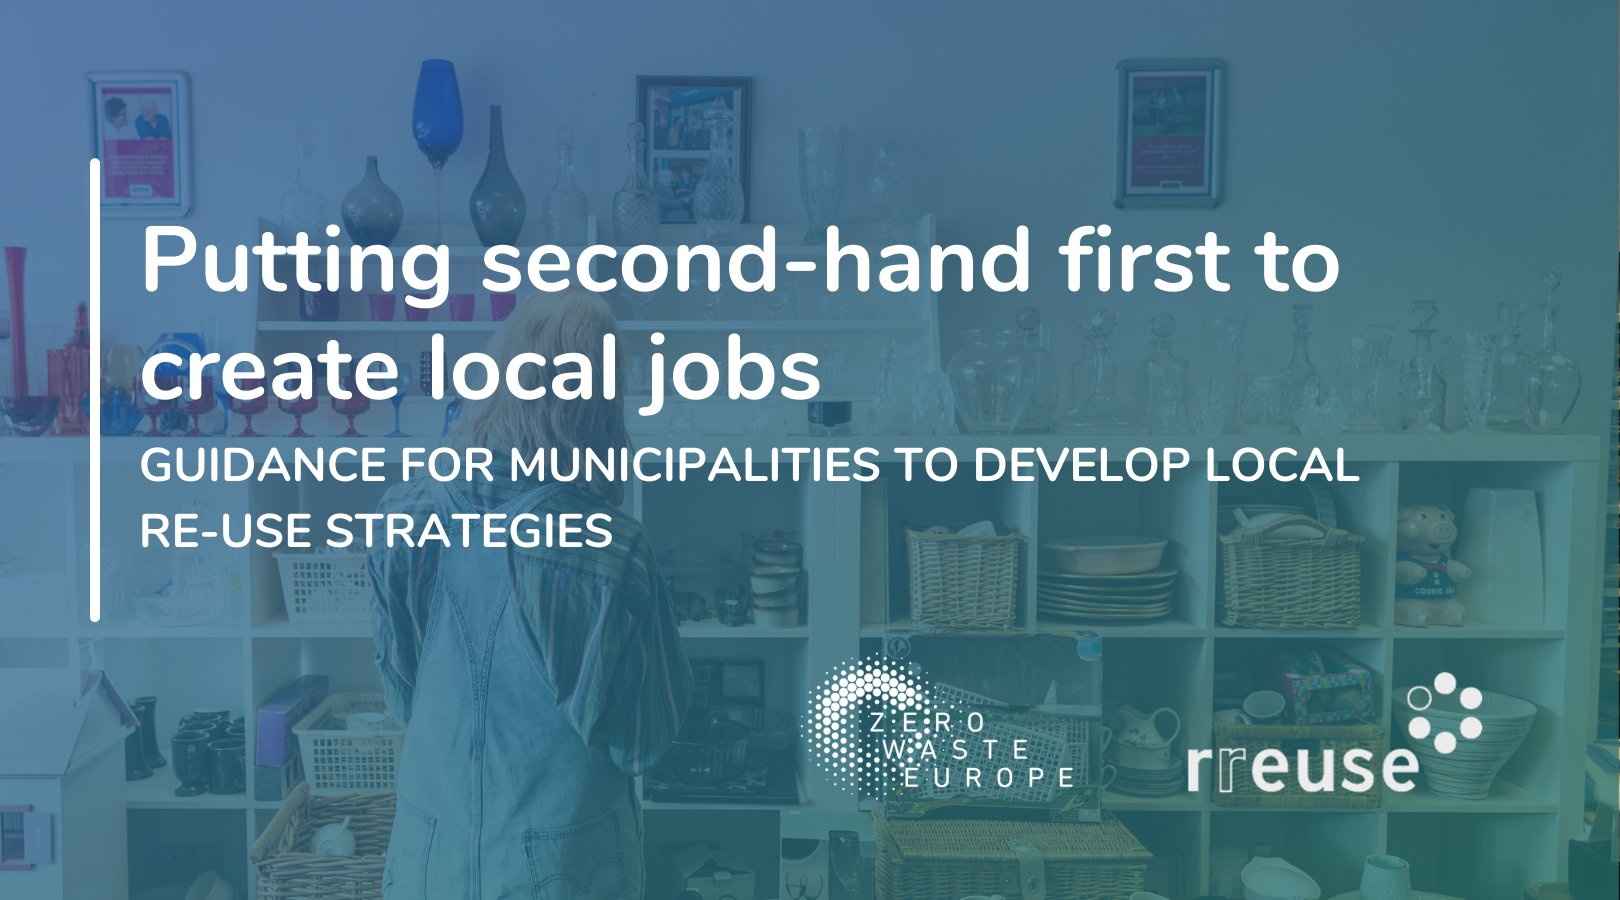 Putting second-hand first to create local jobs: Guidance for municipalities to develop local re-use strategies